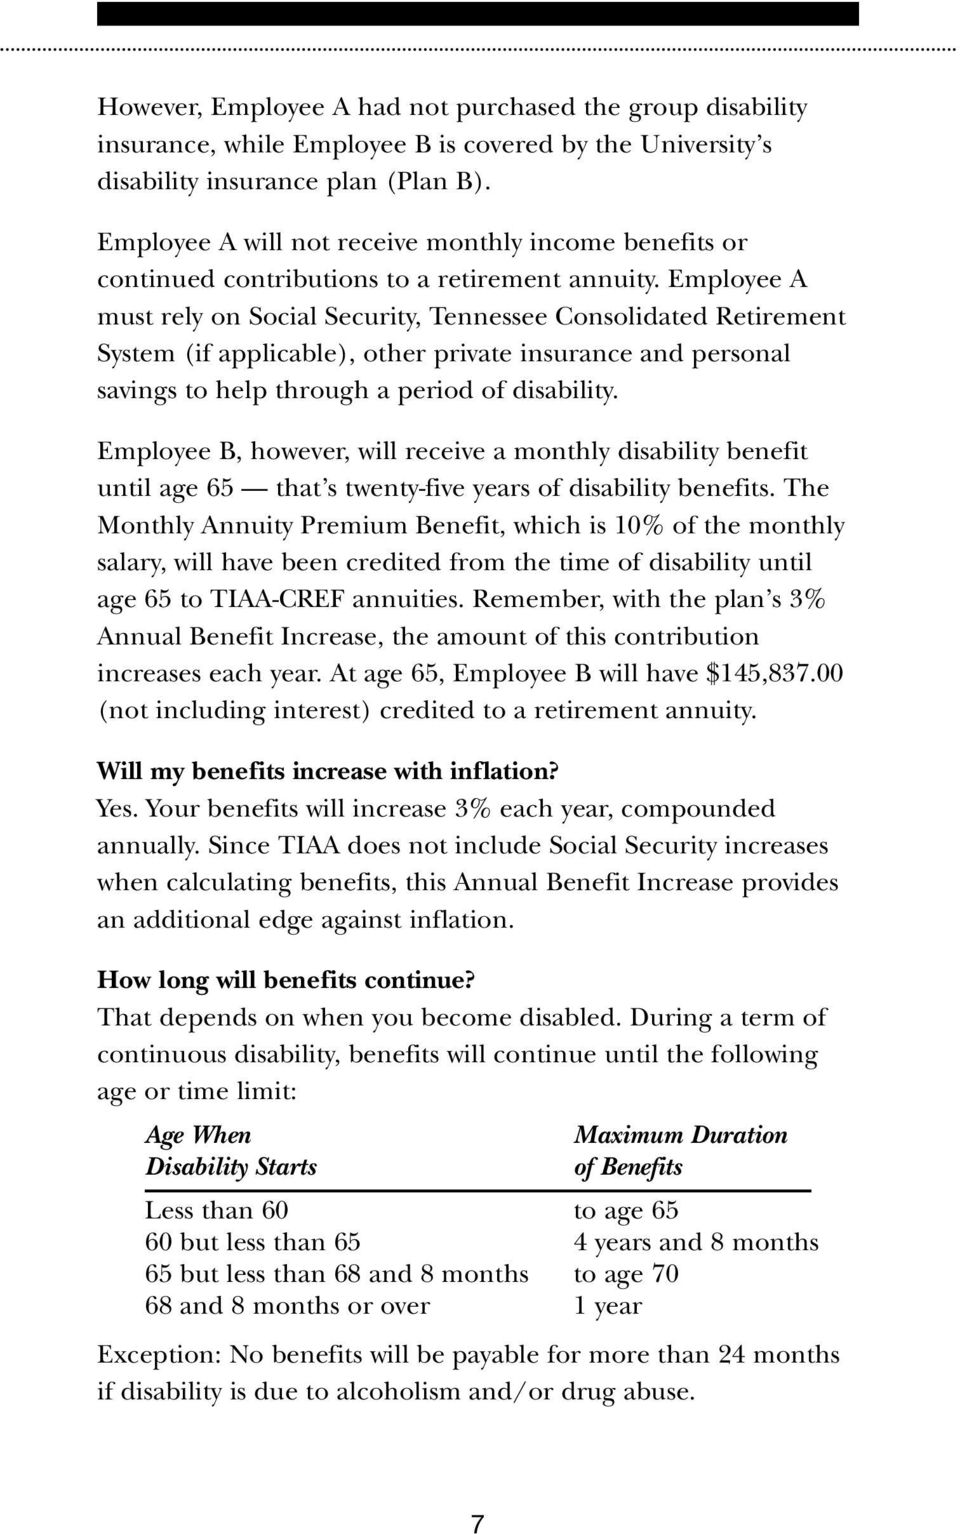 Employee A must rely on Social Security, Tennessee Consolidated Retirement System (if applicable), other private insurance and personal savings to help through a period of disability.